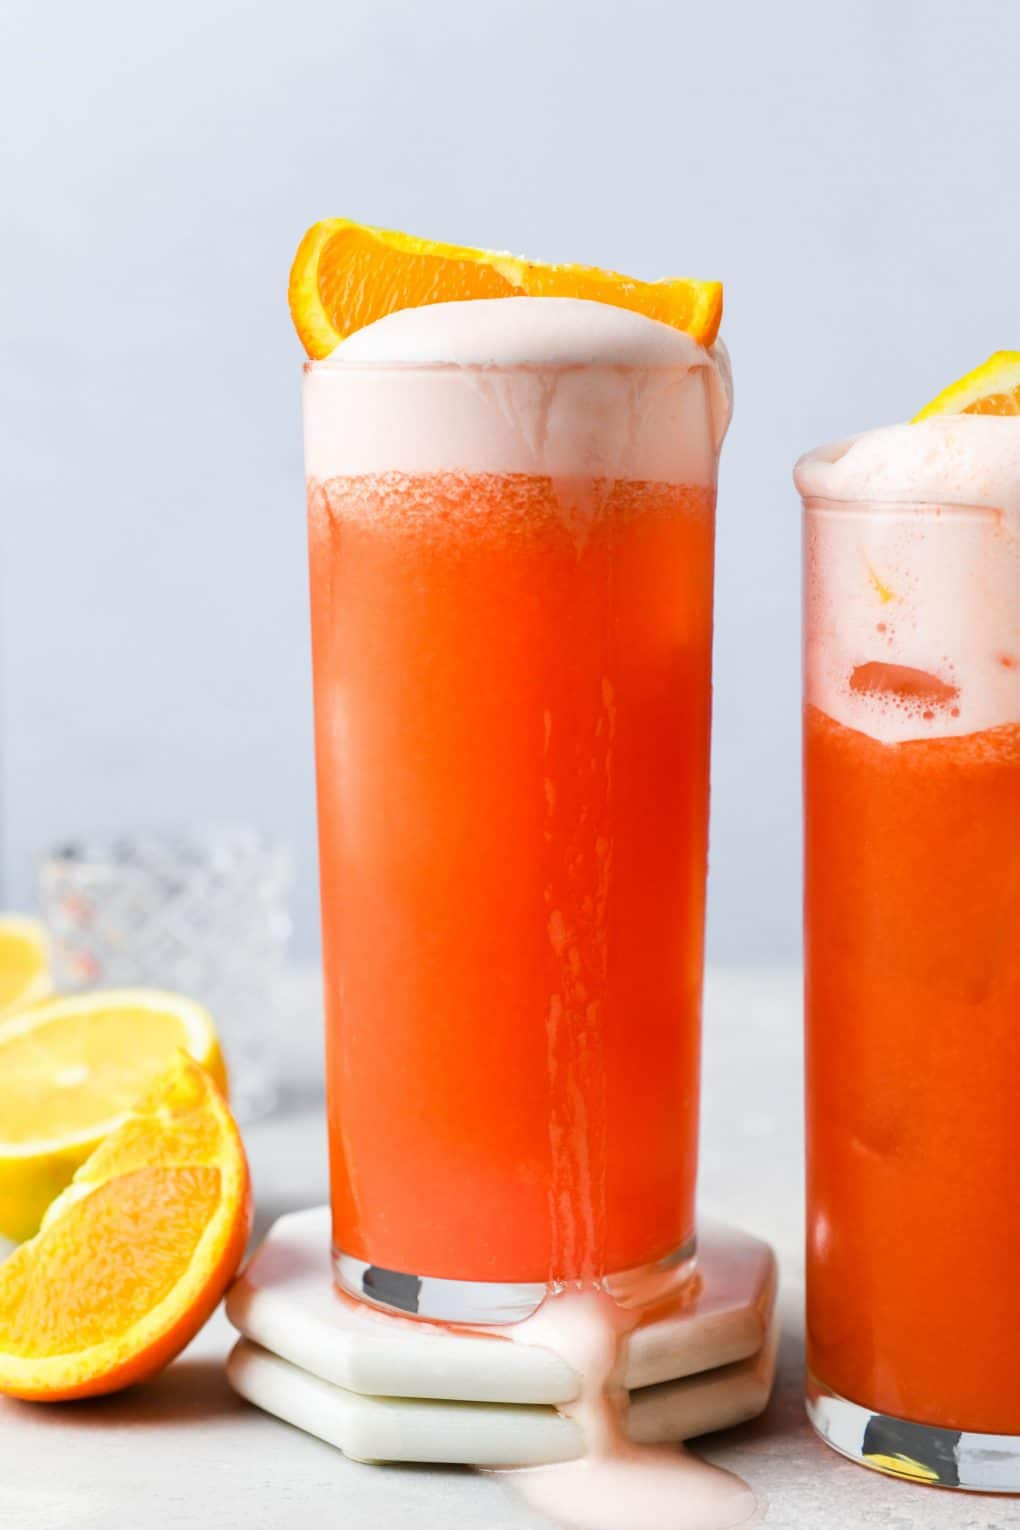 Straight on image of two side by side orange campari vodka sour cocktails, the centered cocktail with an orange wedge on the top of the drink and egg white foam flowing over the side of the high ball glass. On a light background next to some scattered orange and lemon wedges.